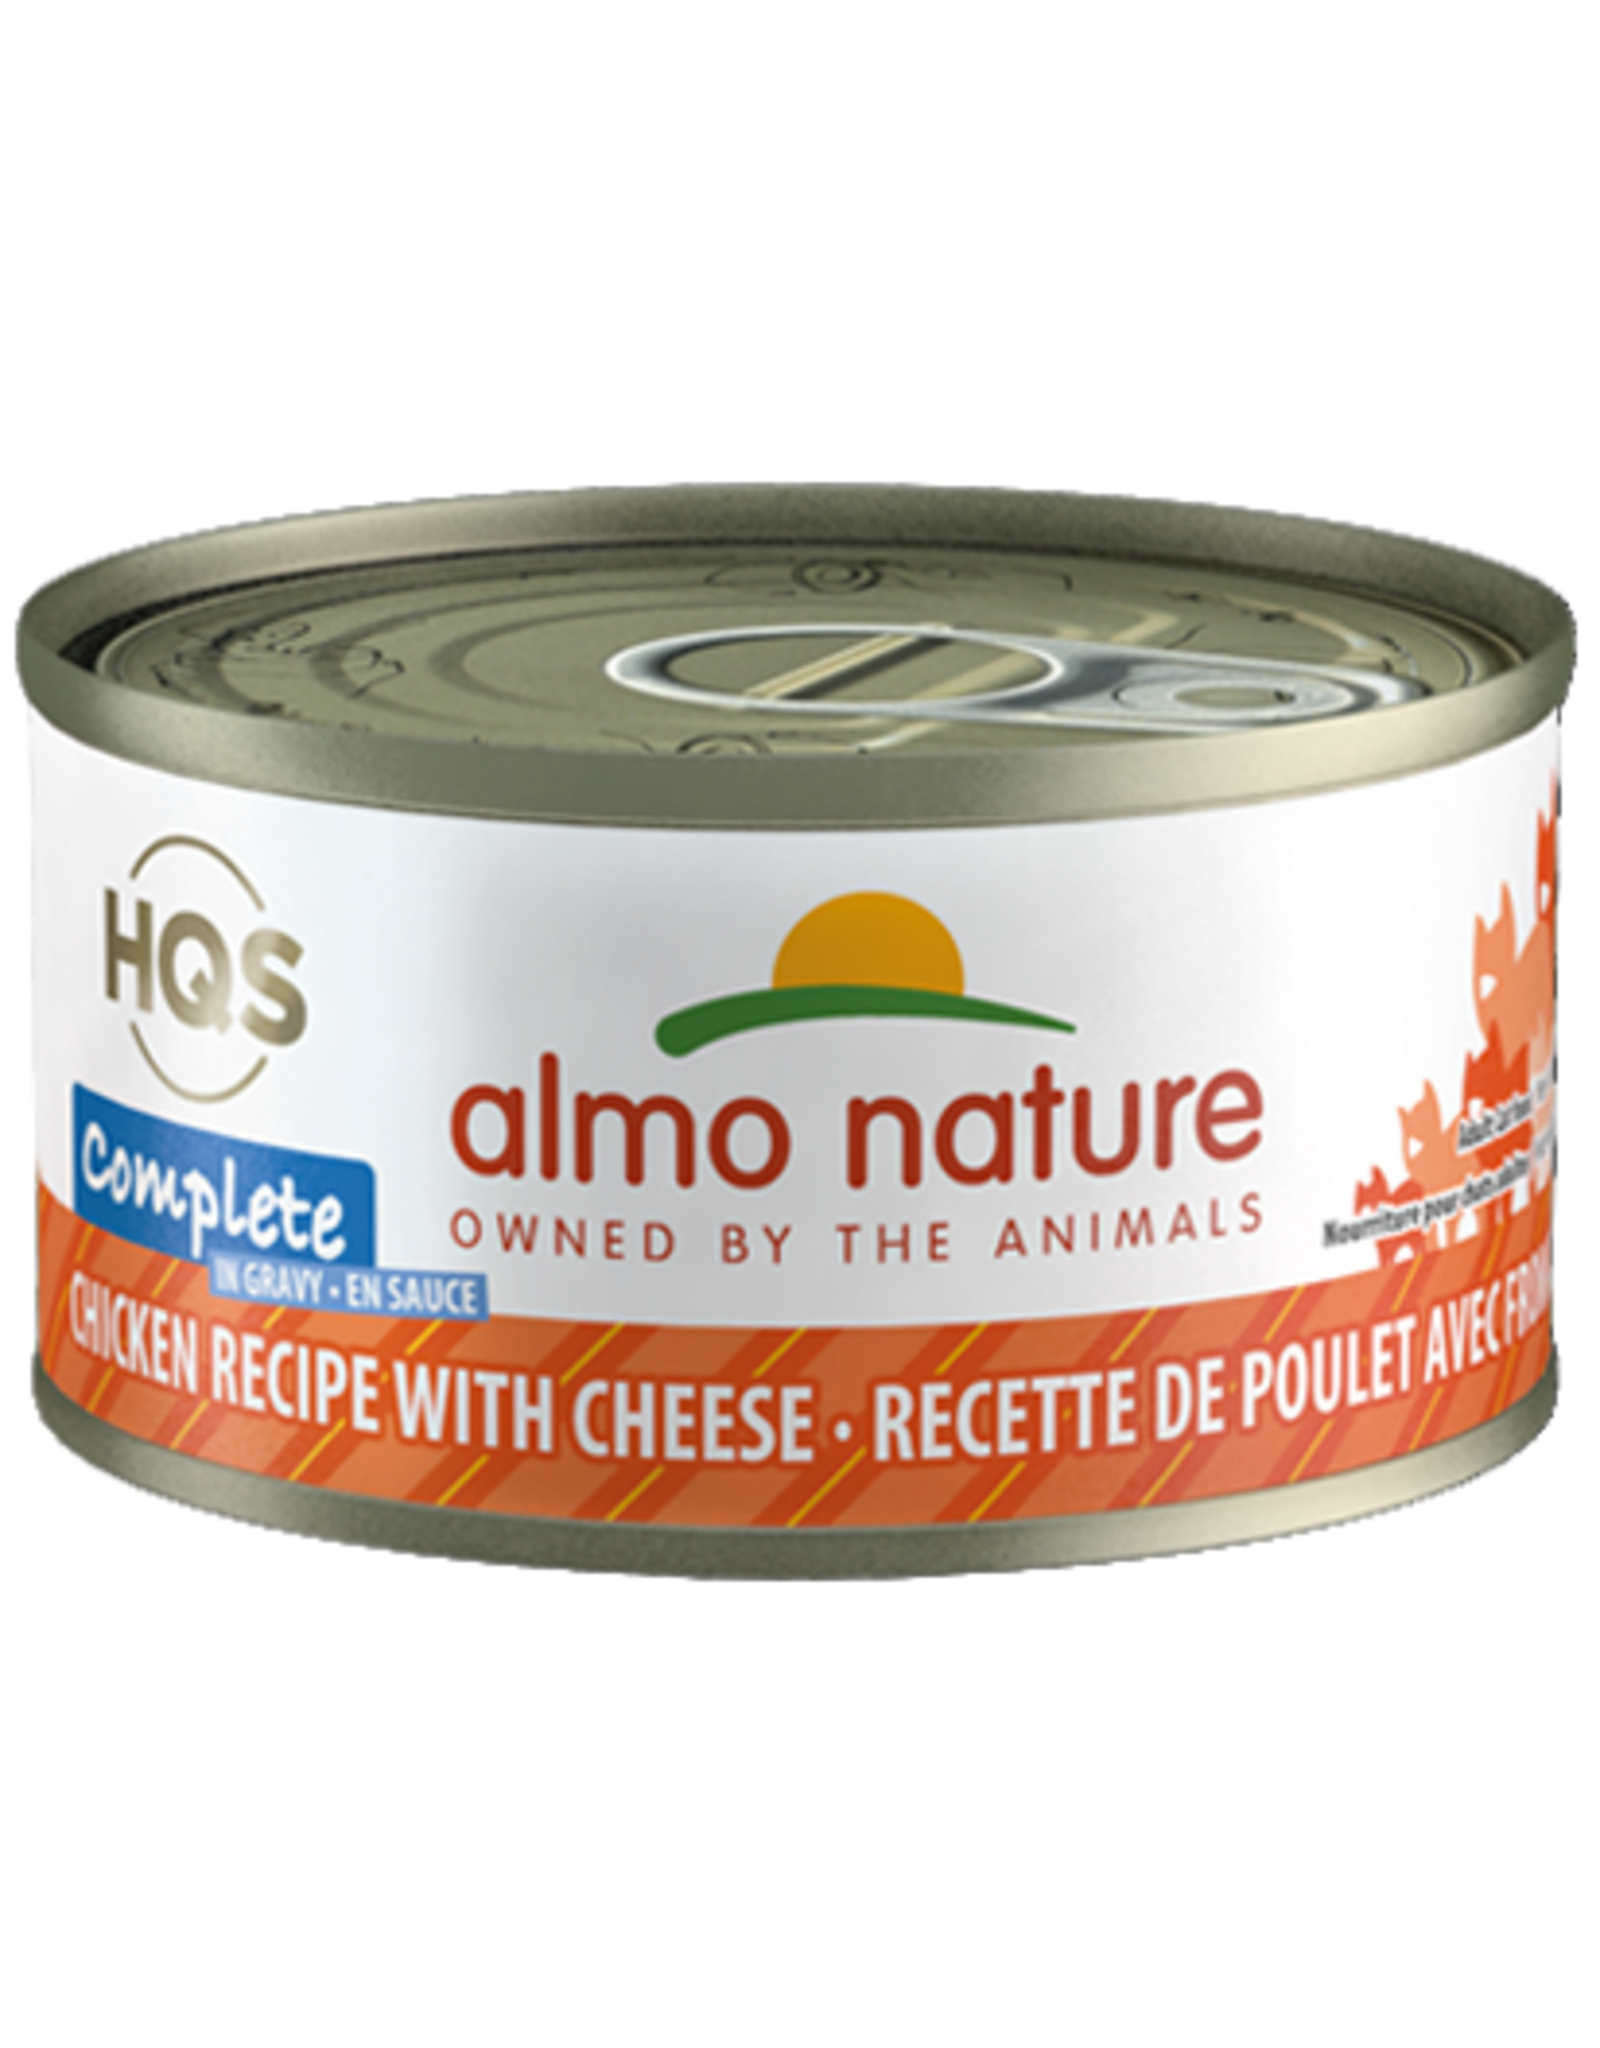 Almo Nature ALMO NATURE CAT HQS COMPLETE CHICKEN RECIPE WITH CHEESE IN GRAVY 2.47OZ